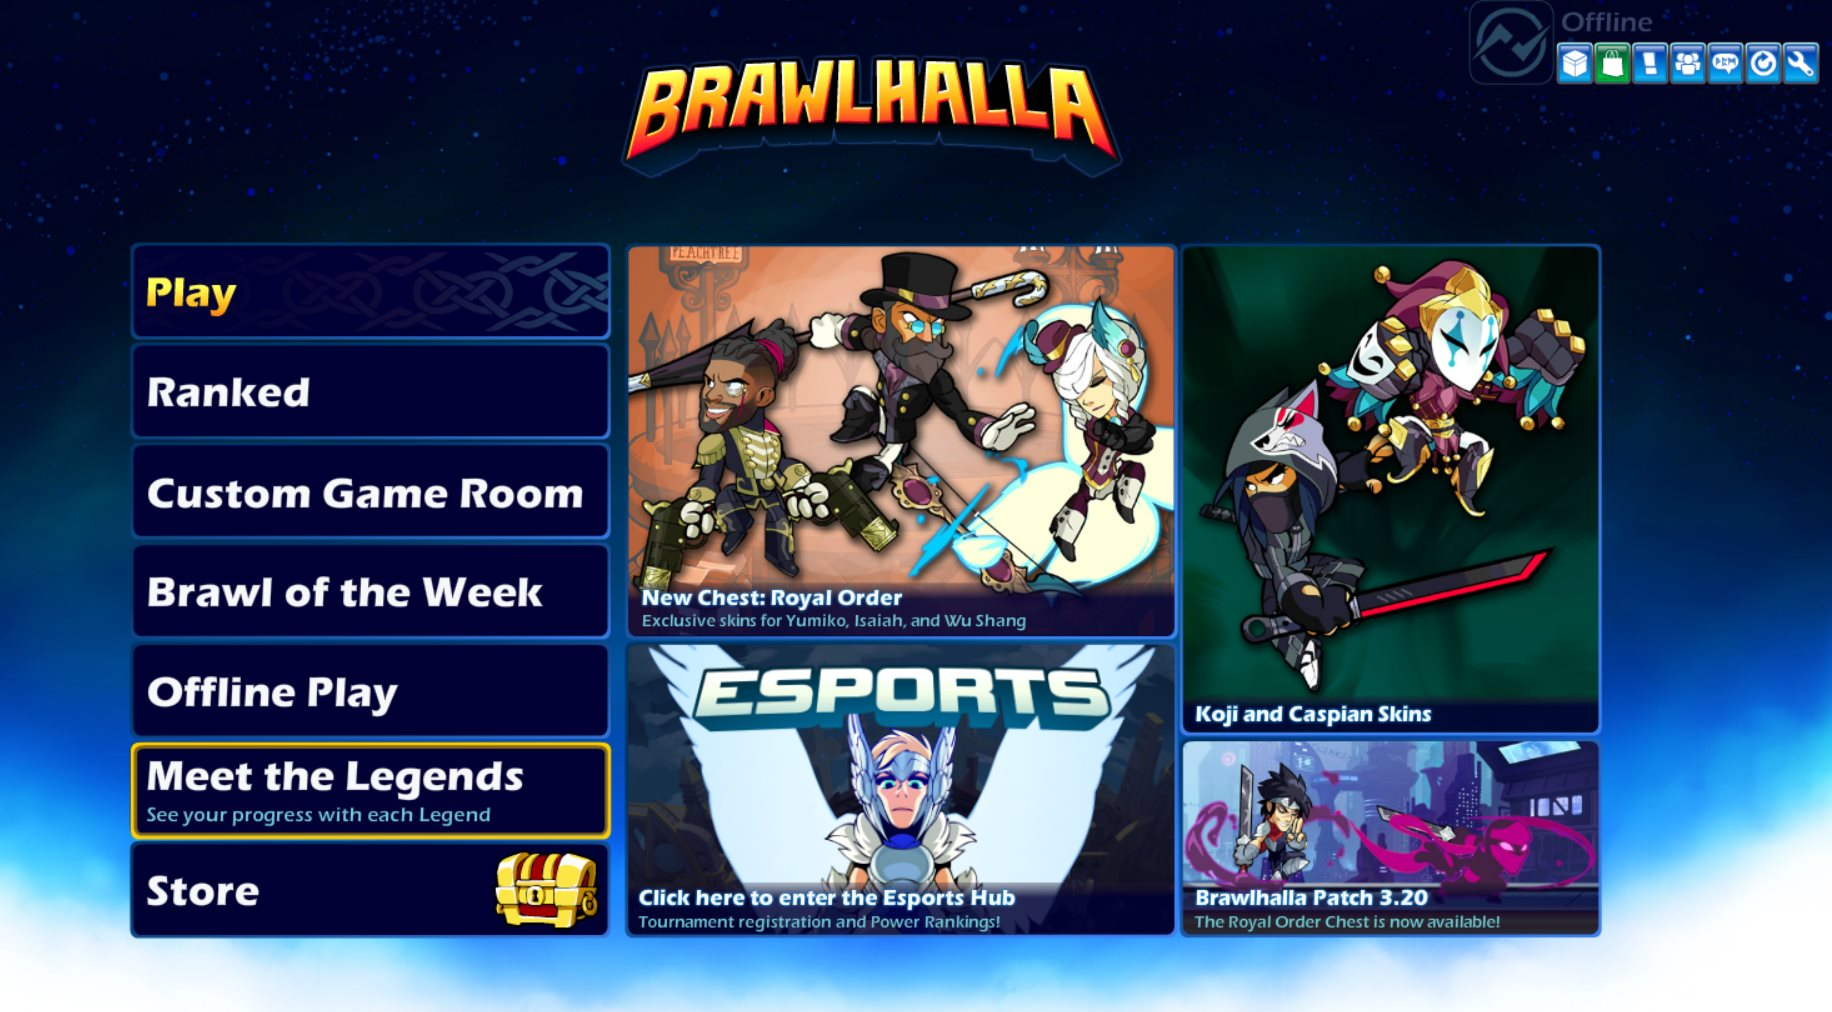 Game of the week presents: Brawlhalla 3.20